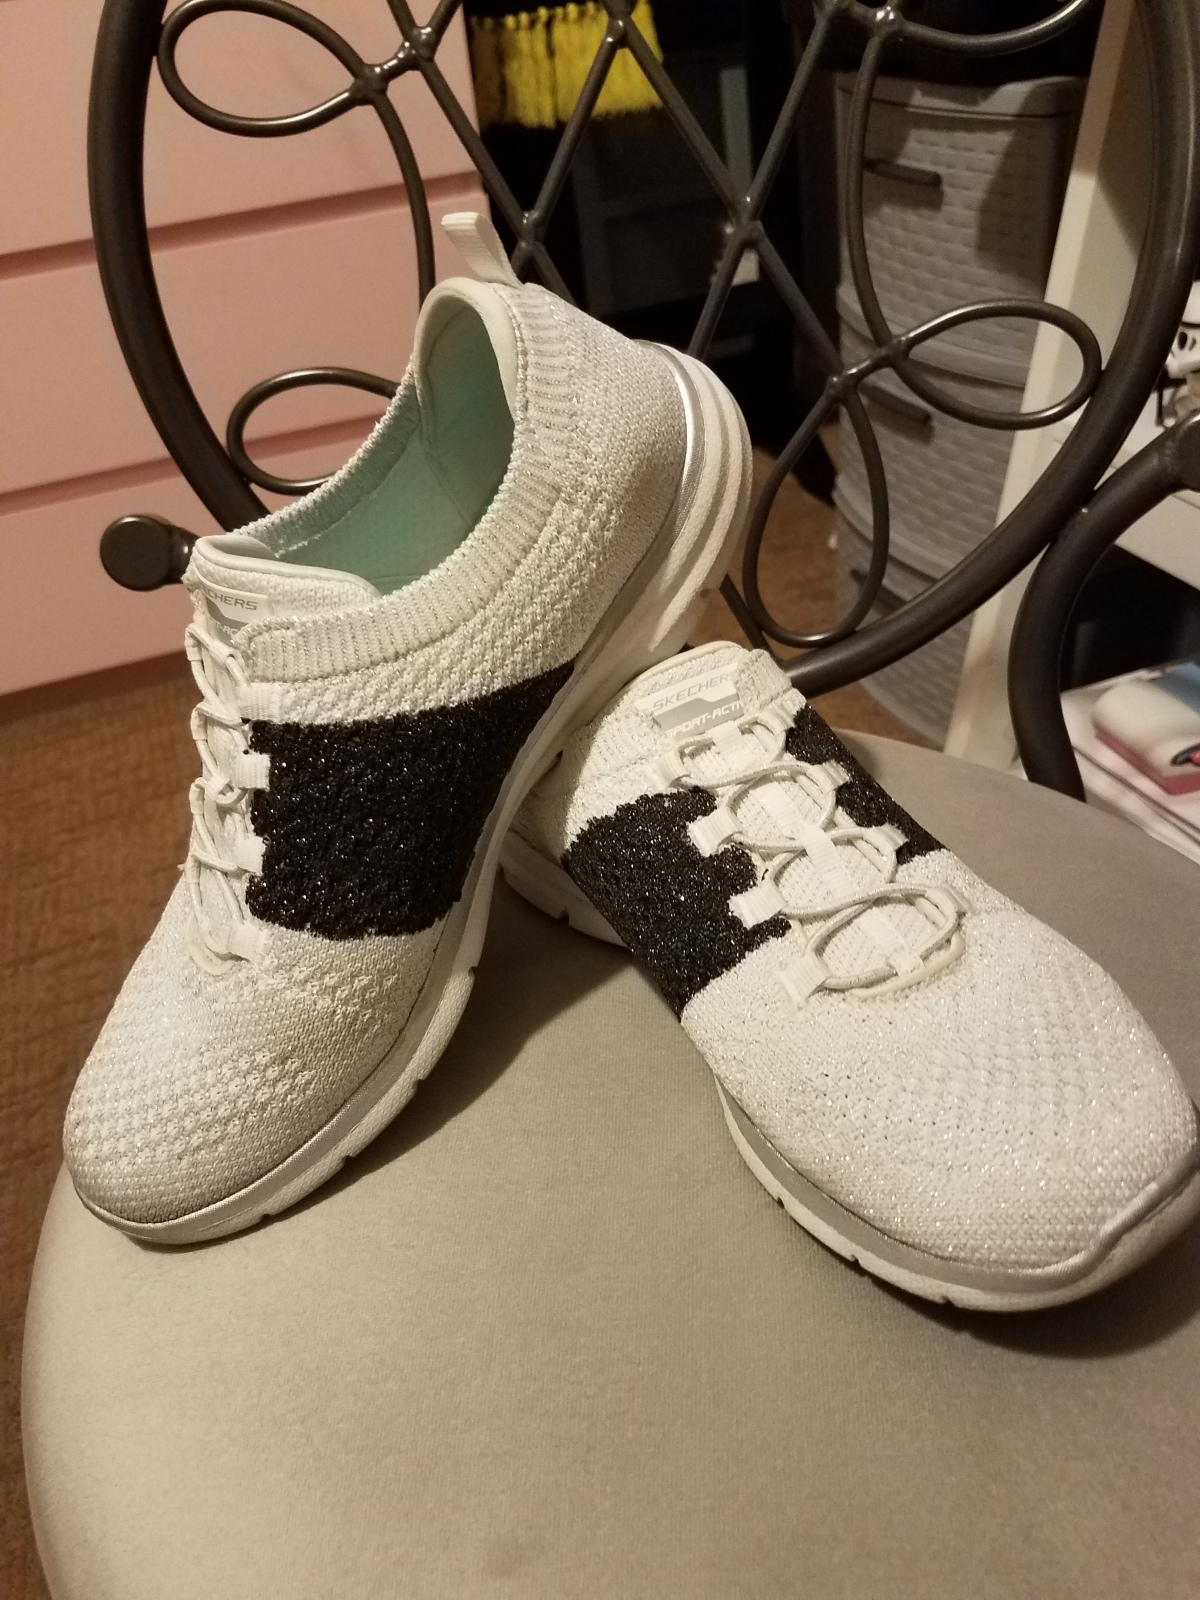 DIY Saddle Shoes